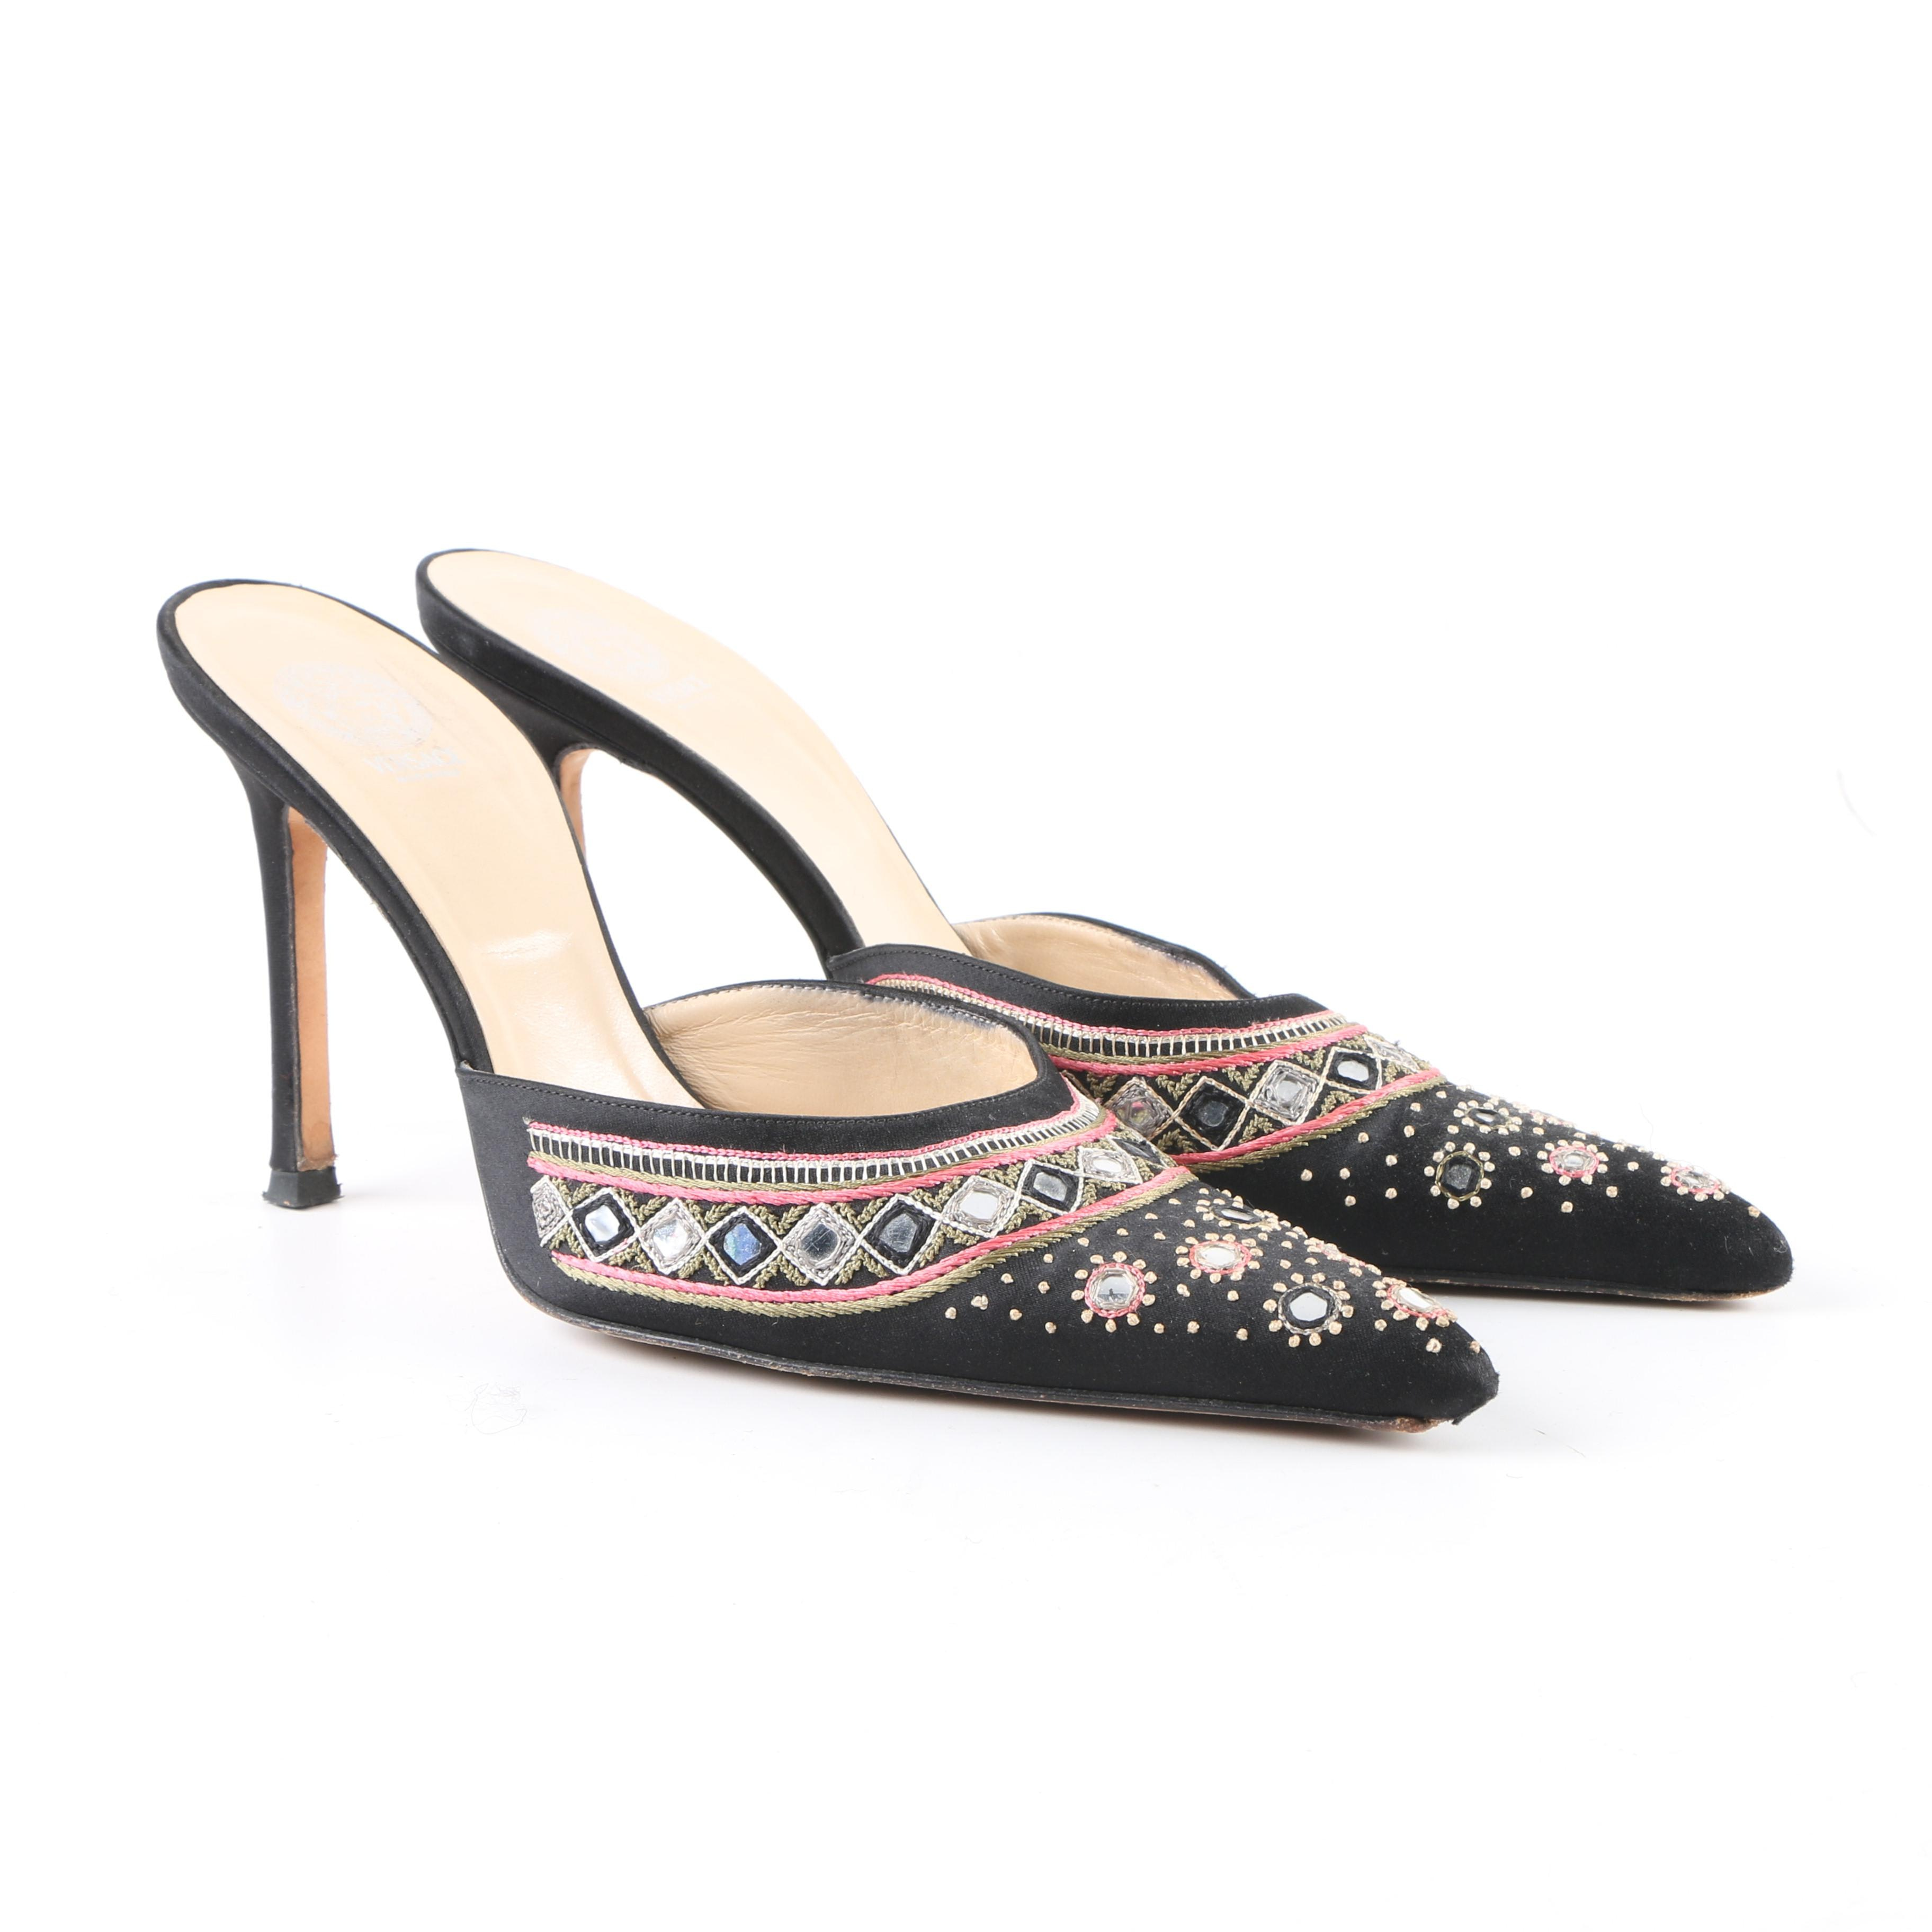 Women's Versace Black Fabric High-Heeled Mules with Embroidered Accents